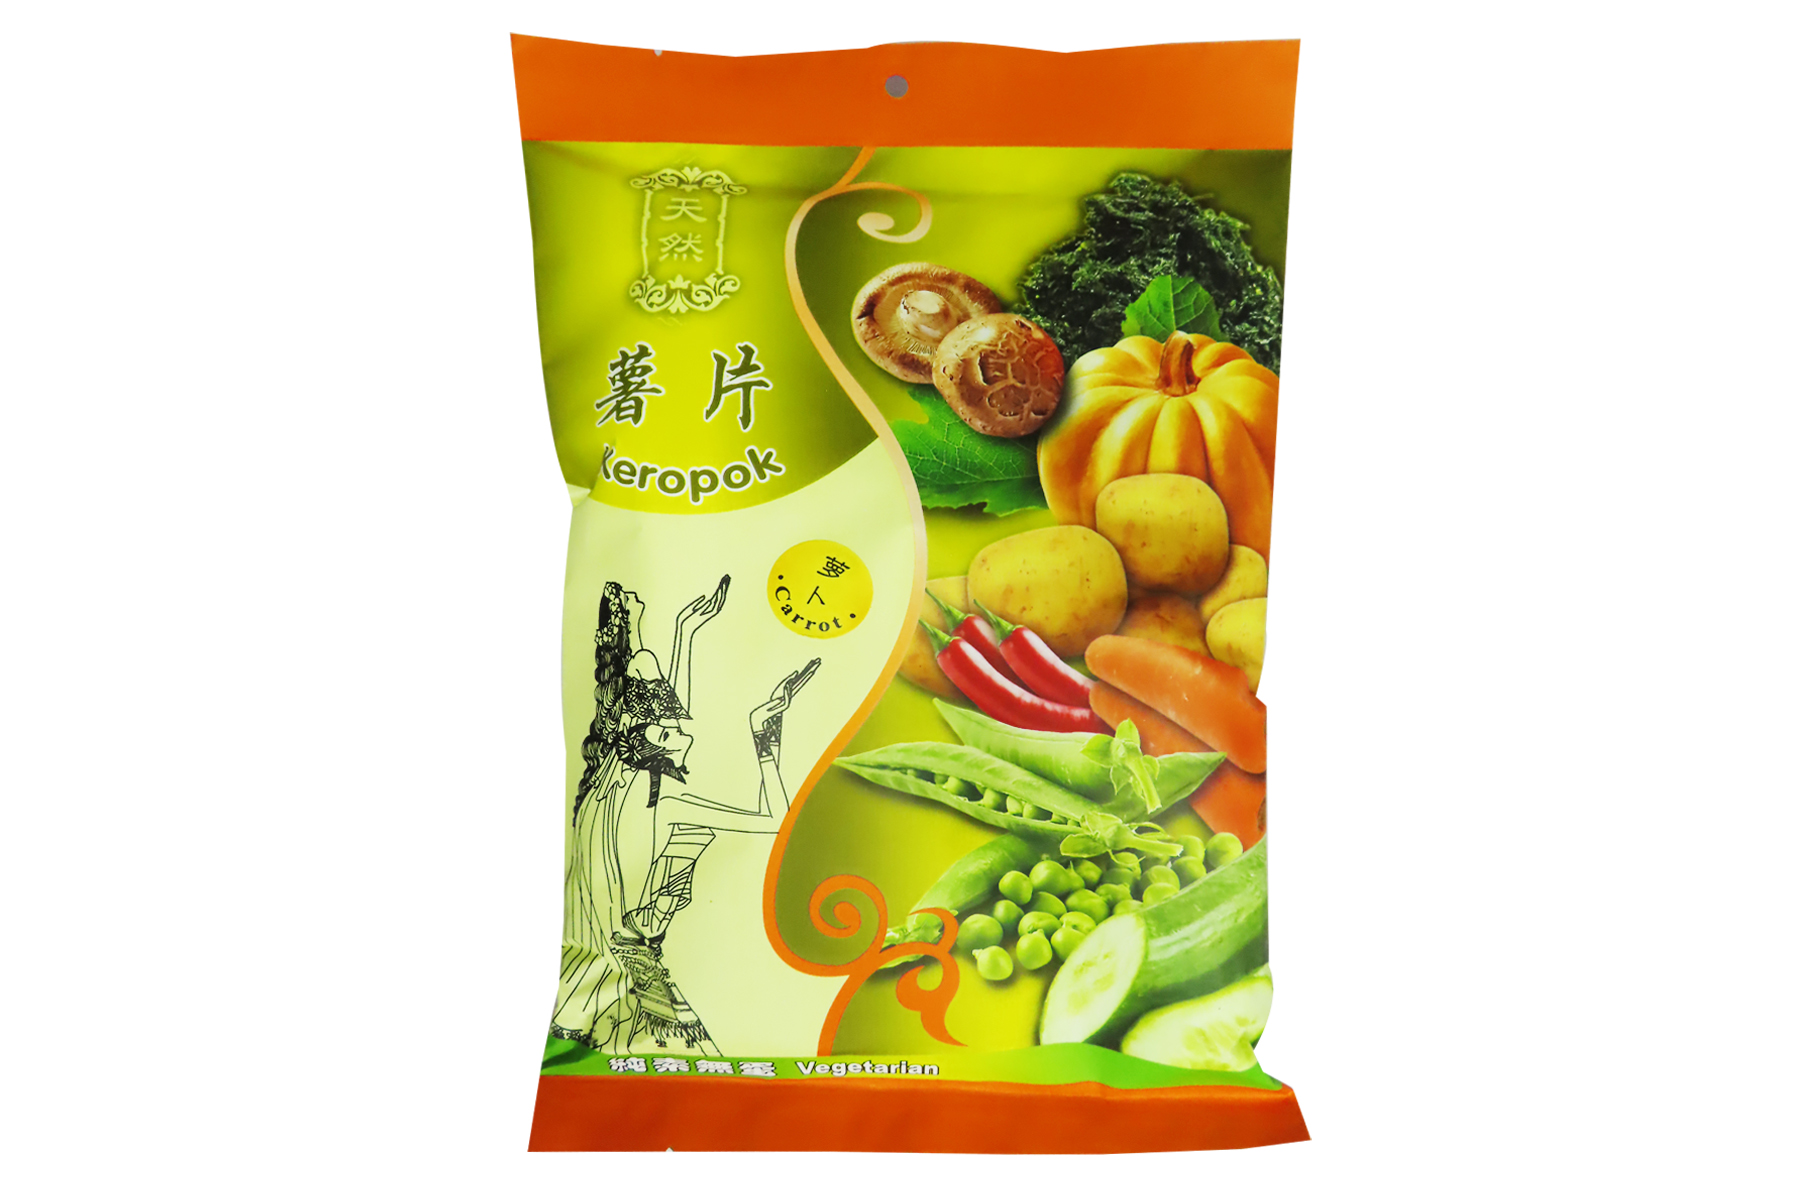 Image Kun Yi Carrot Cracker 昆益 - 罗卜薯片 40grams